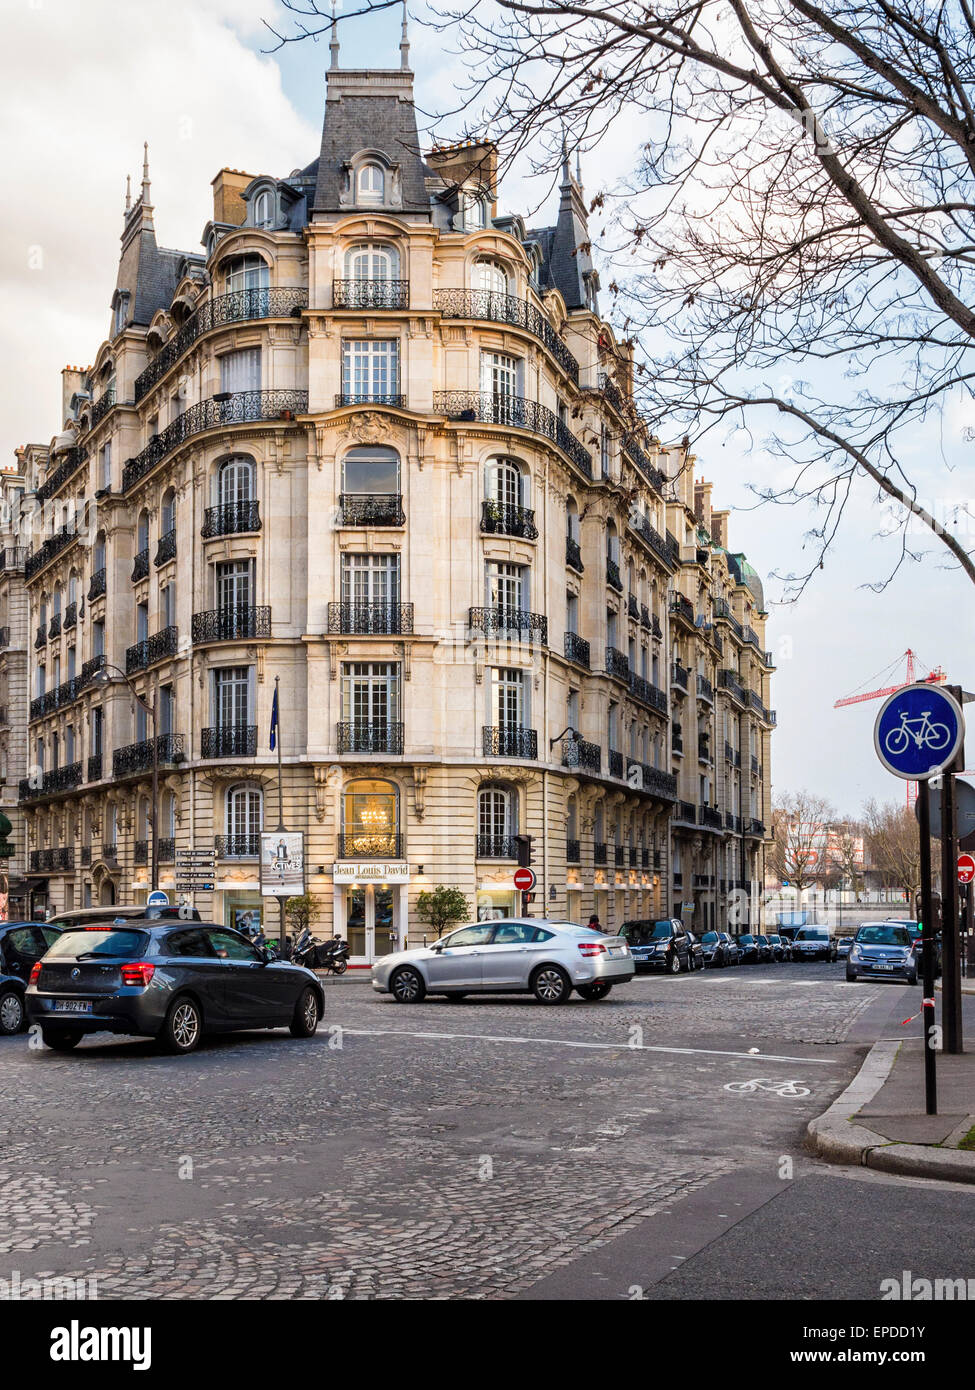 luxury apartments exterior. Luxury Apartment building exterior and Jean Louis David International salon  on street corner Paris